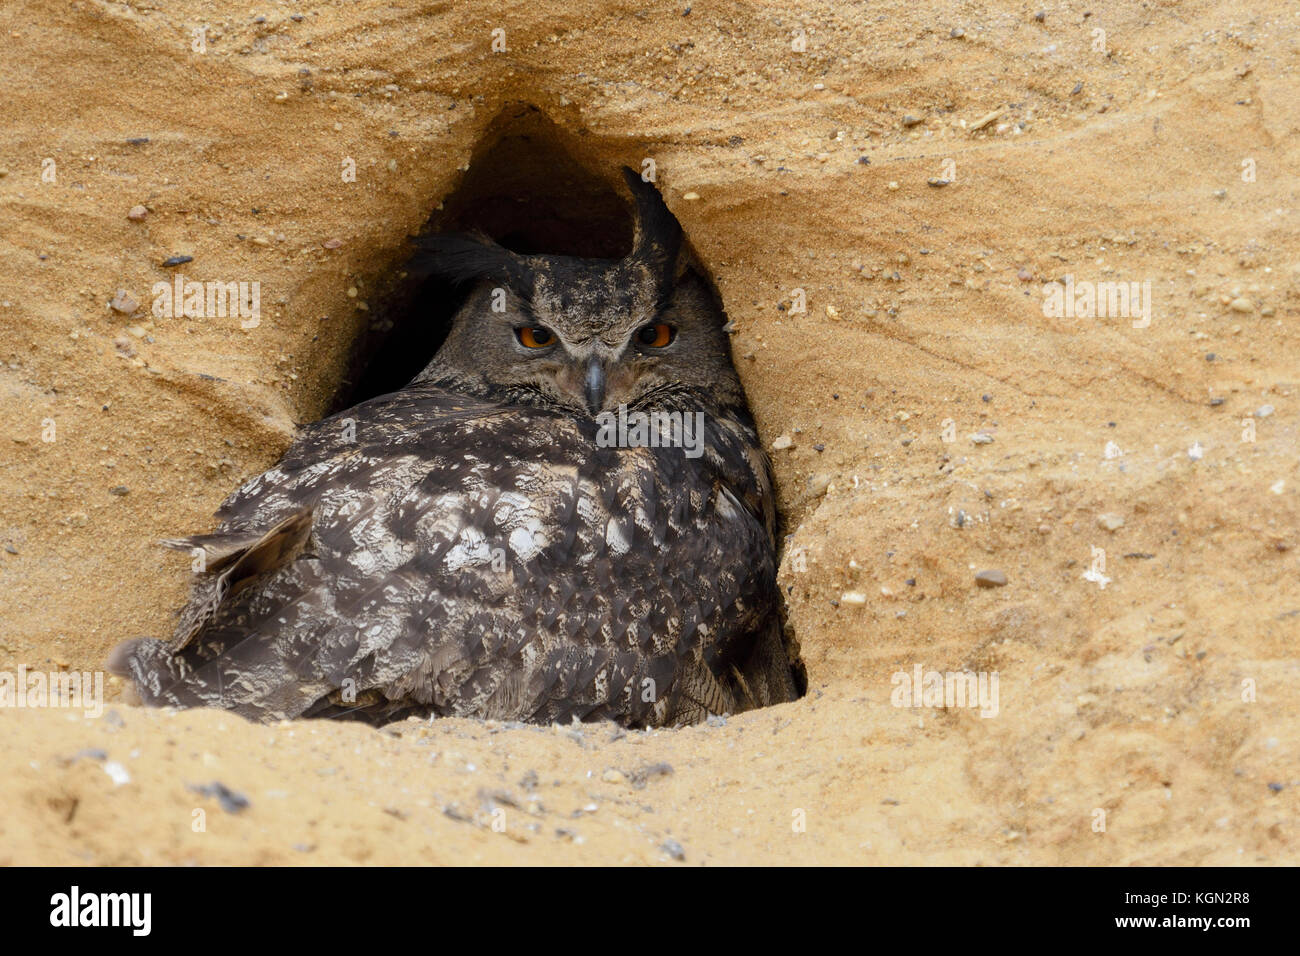 Eurasian Eagle Owl / Europaeischer Uhu ( Bubo bubo ), adult, resting in the entrance of its nesting site in a sand - Stock Image